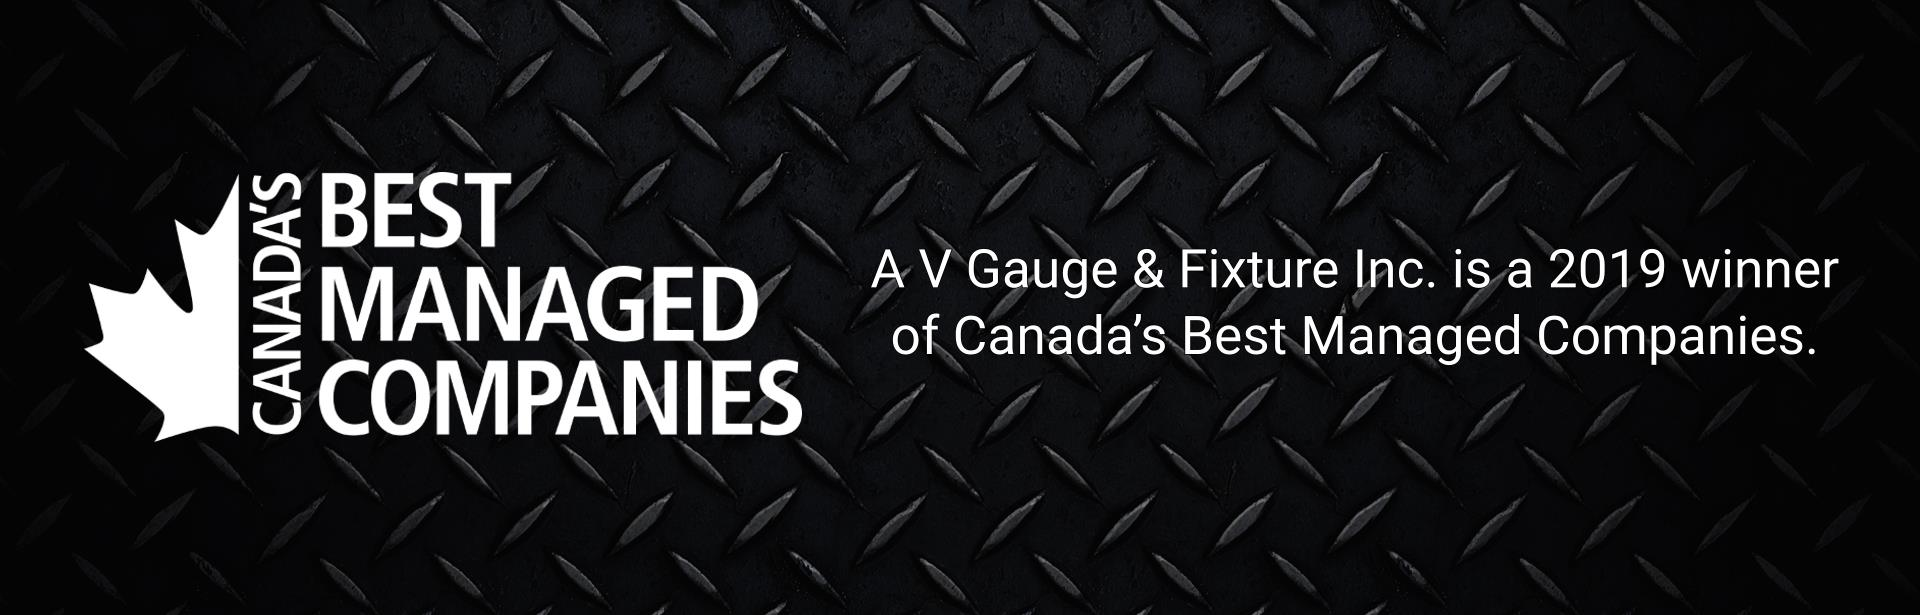 A V Gauge & Fixture Inc. is a 2019 winner of Canada's Best Managed Companies.